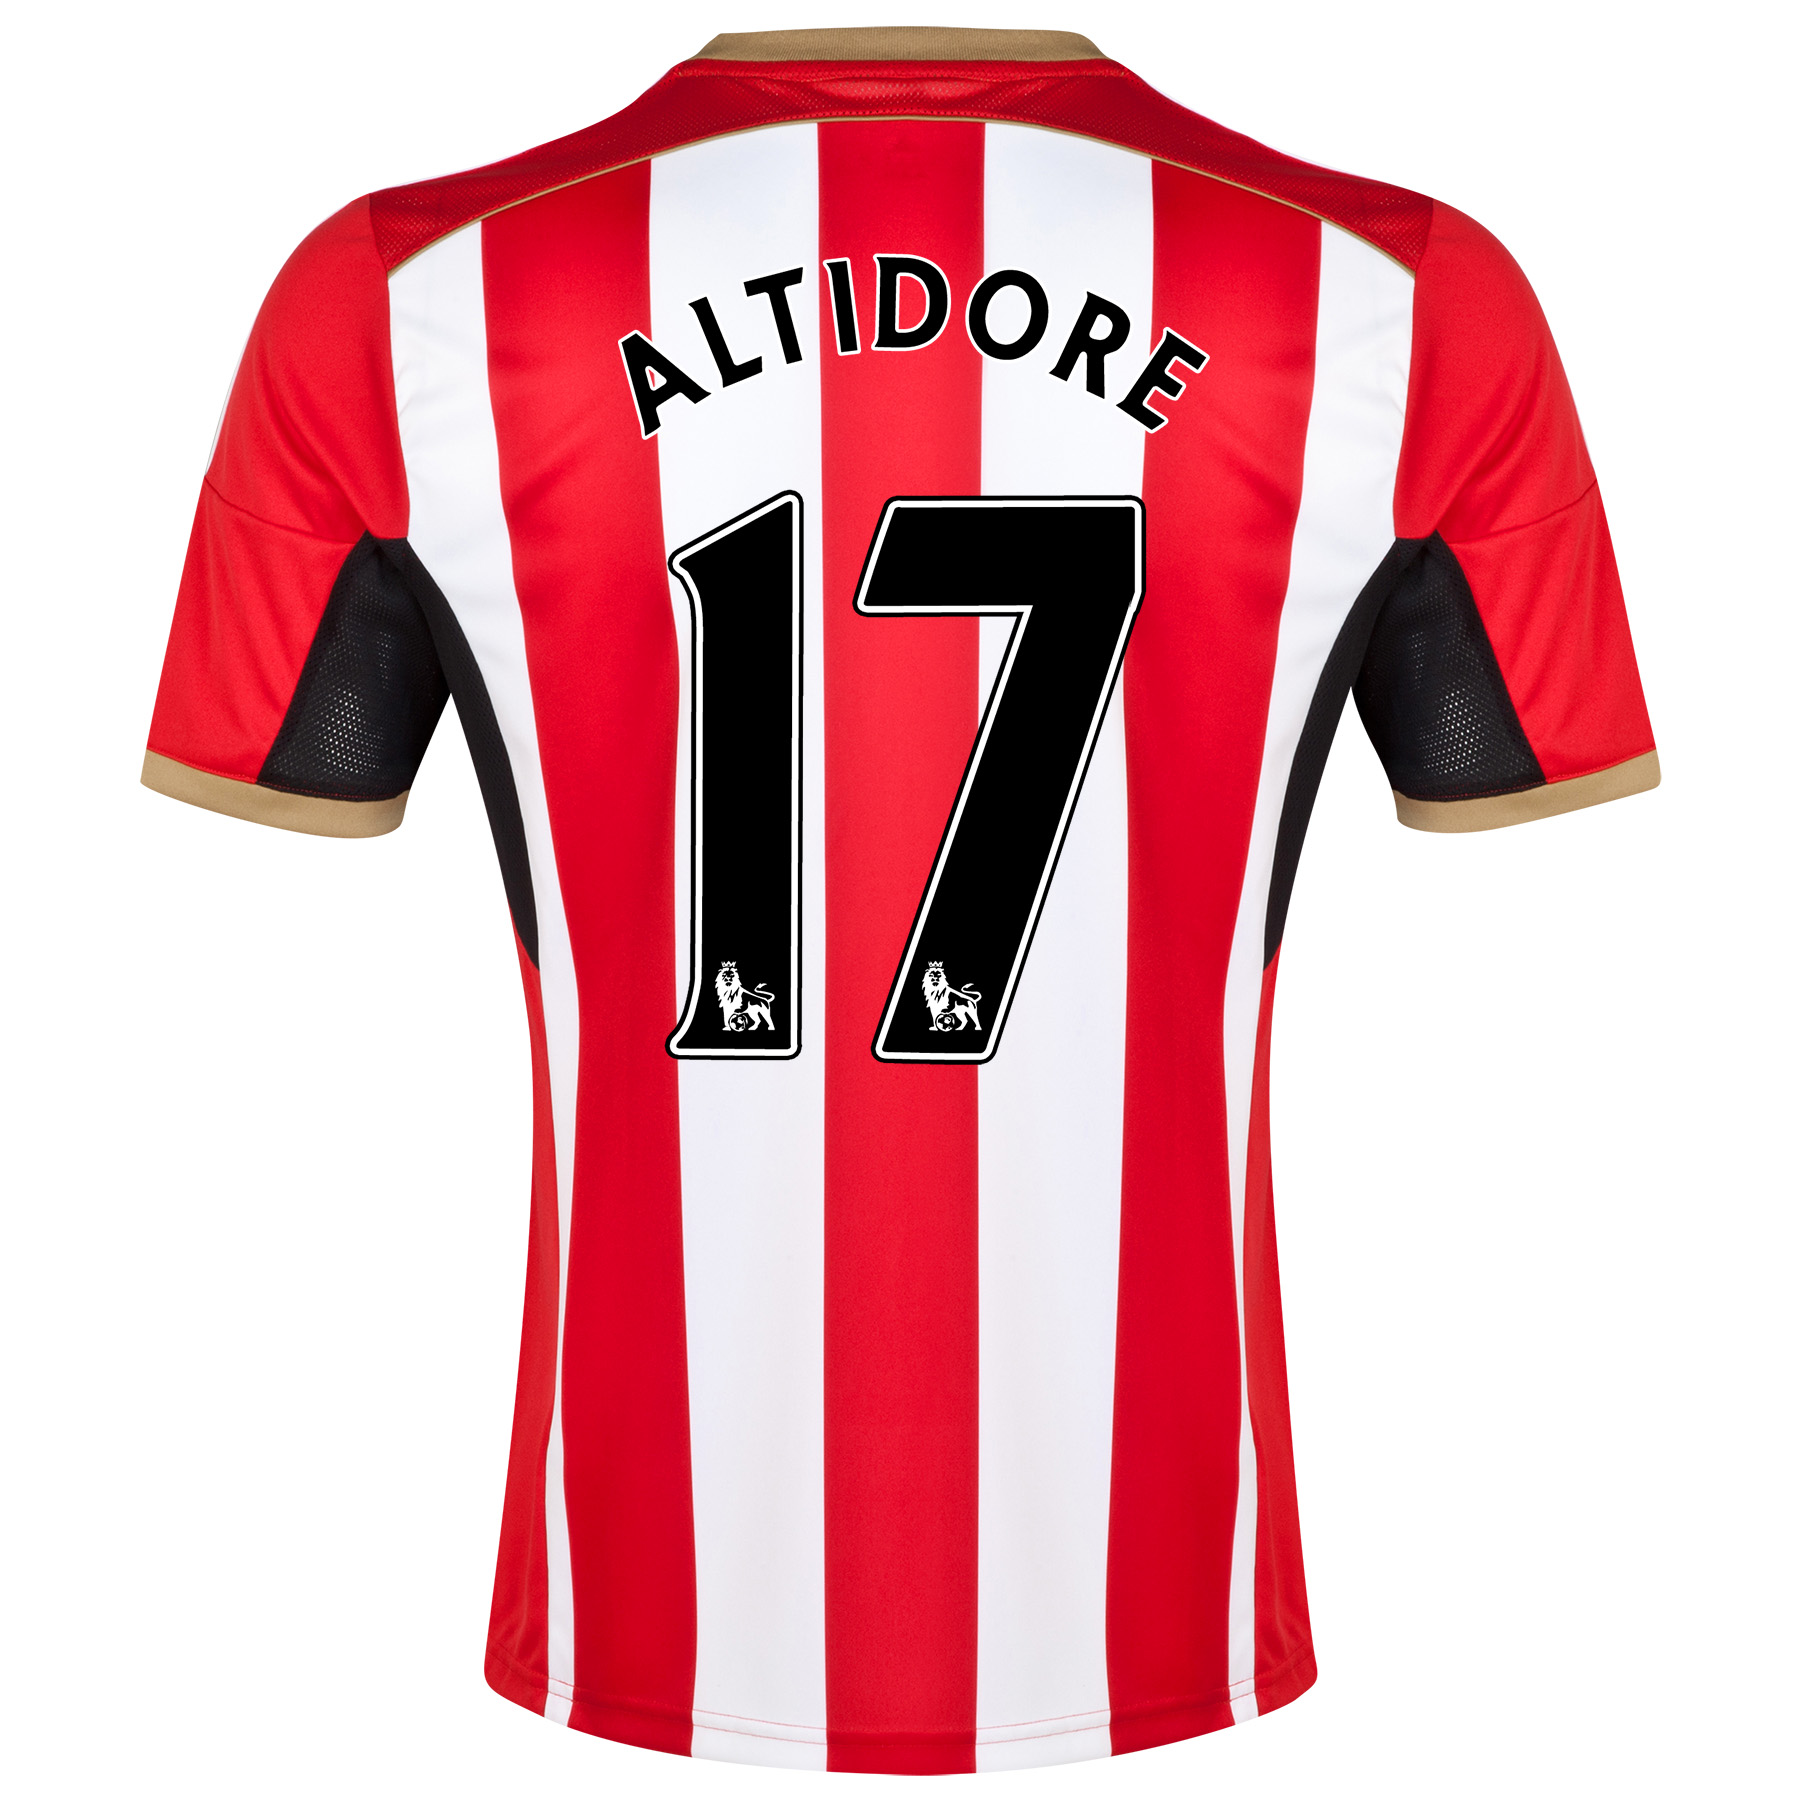 Sunderland Home Shirt 2014/15 Red with Altidore 17 printing